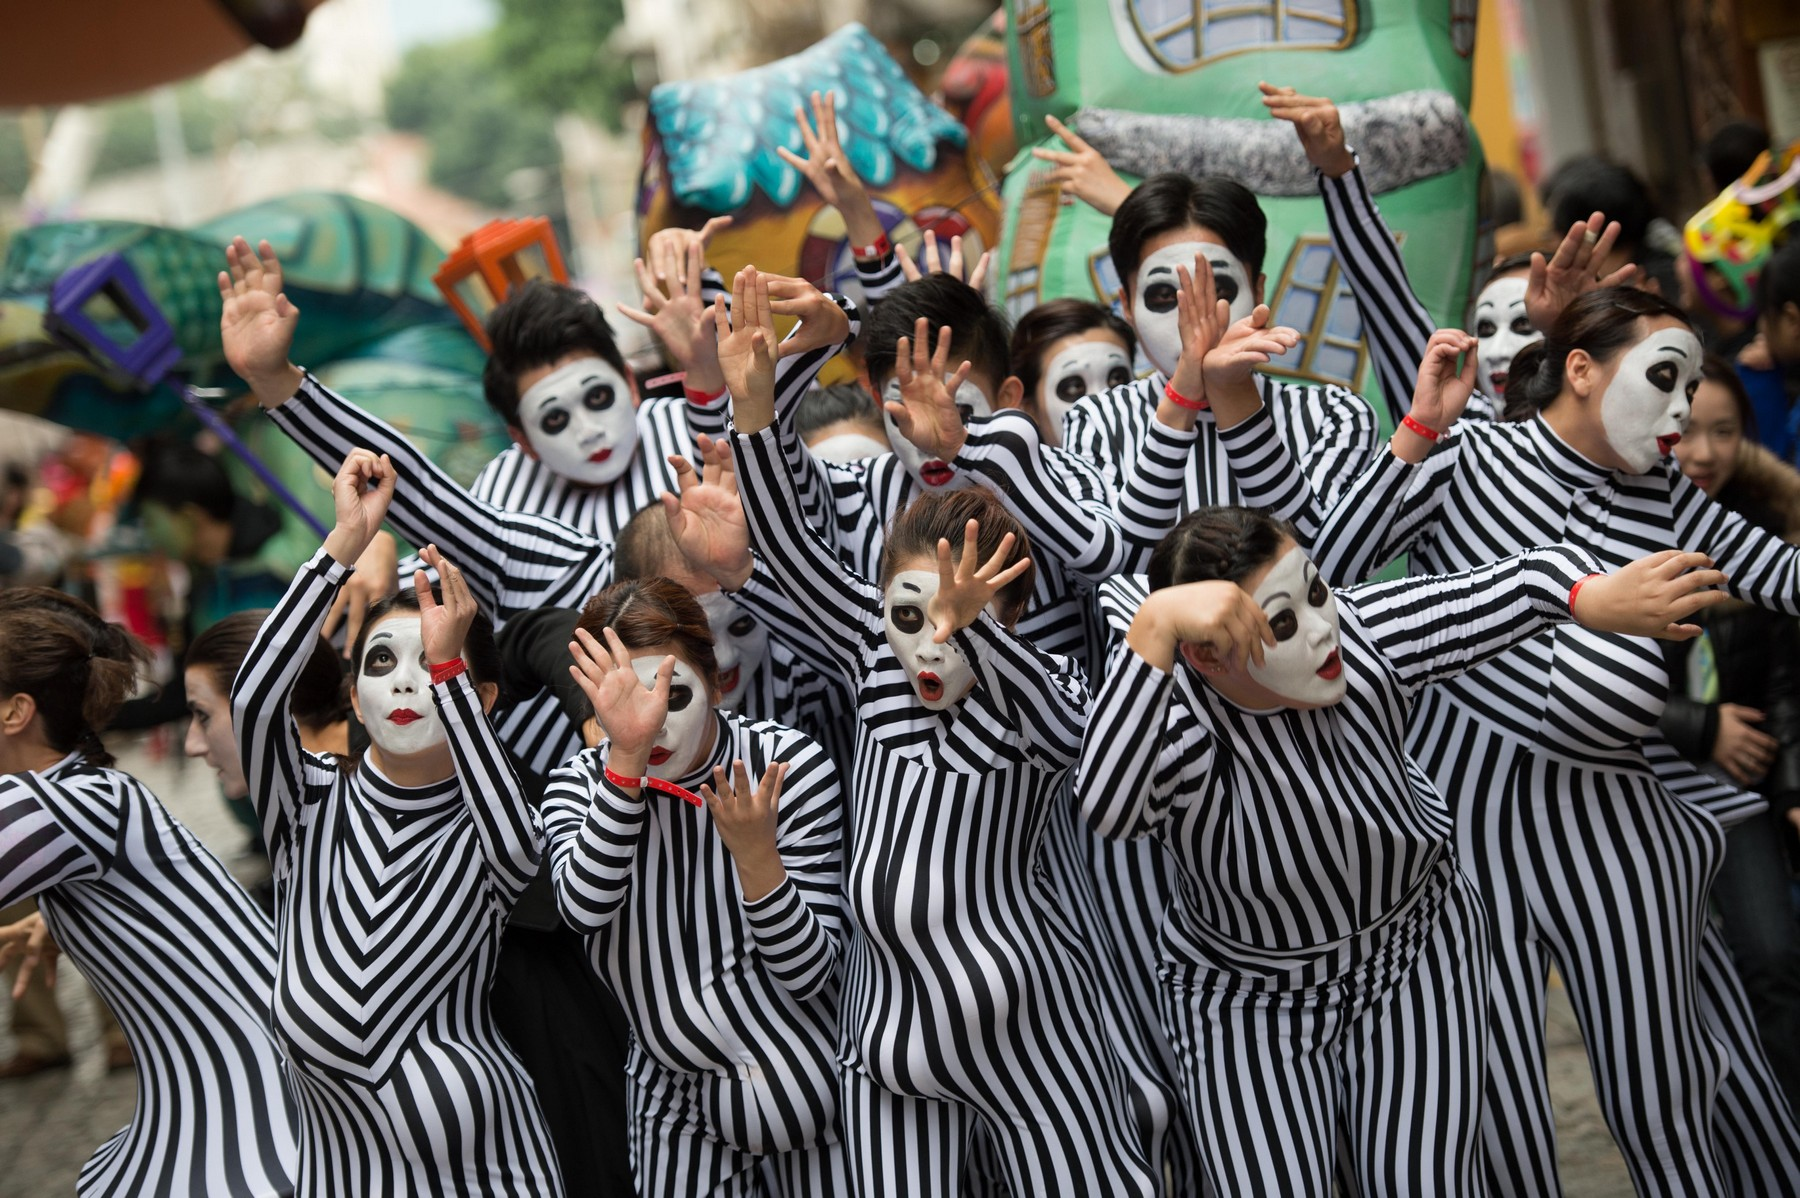 16th edition of Macau Fringe Festival to take place only in 2017